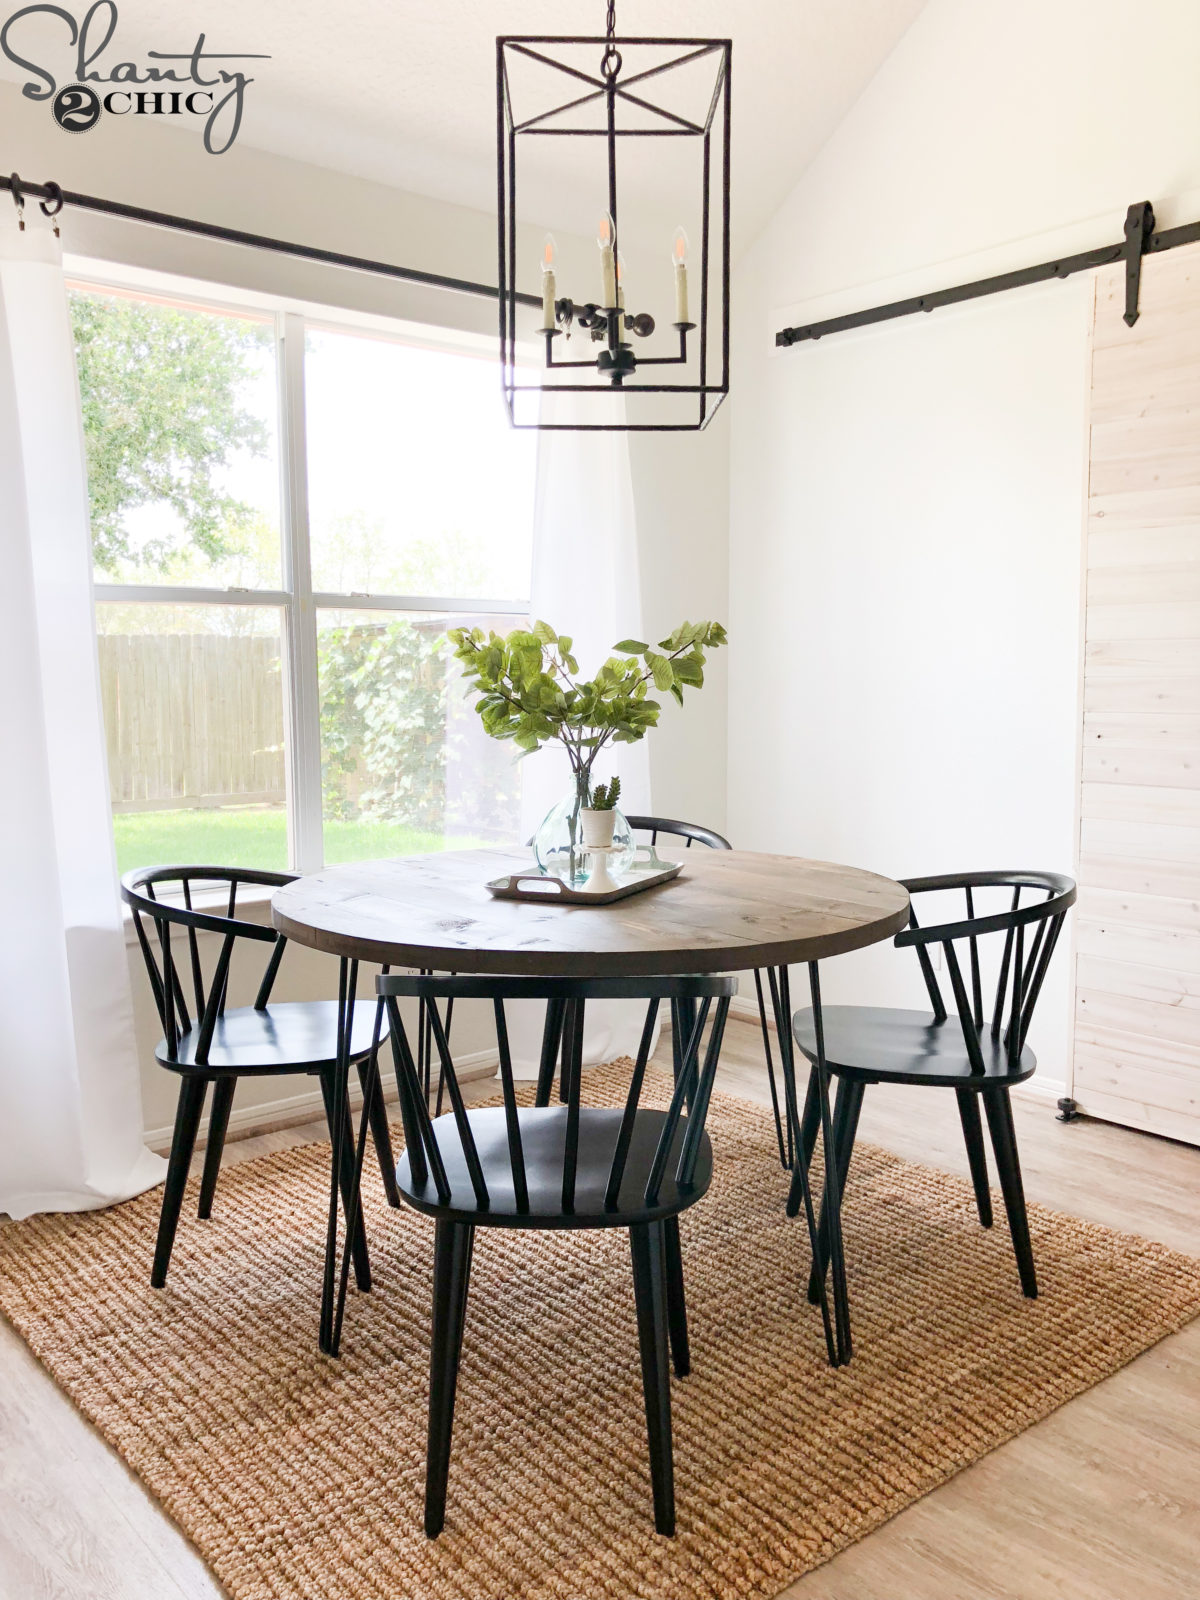 Phenomenal Dining Tables Archives Shanty 2 Chic Interior Design Ideas Tzicisoteloinfo